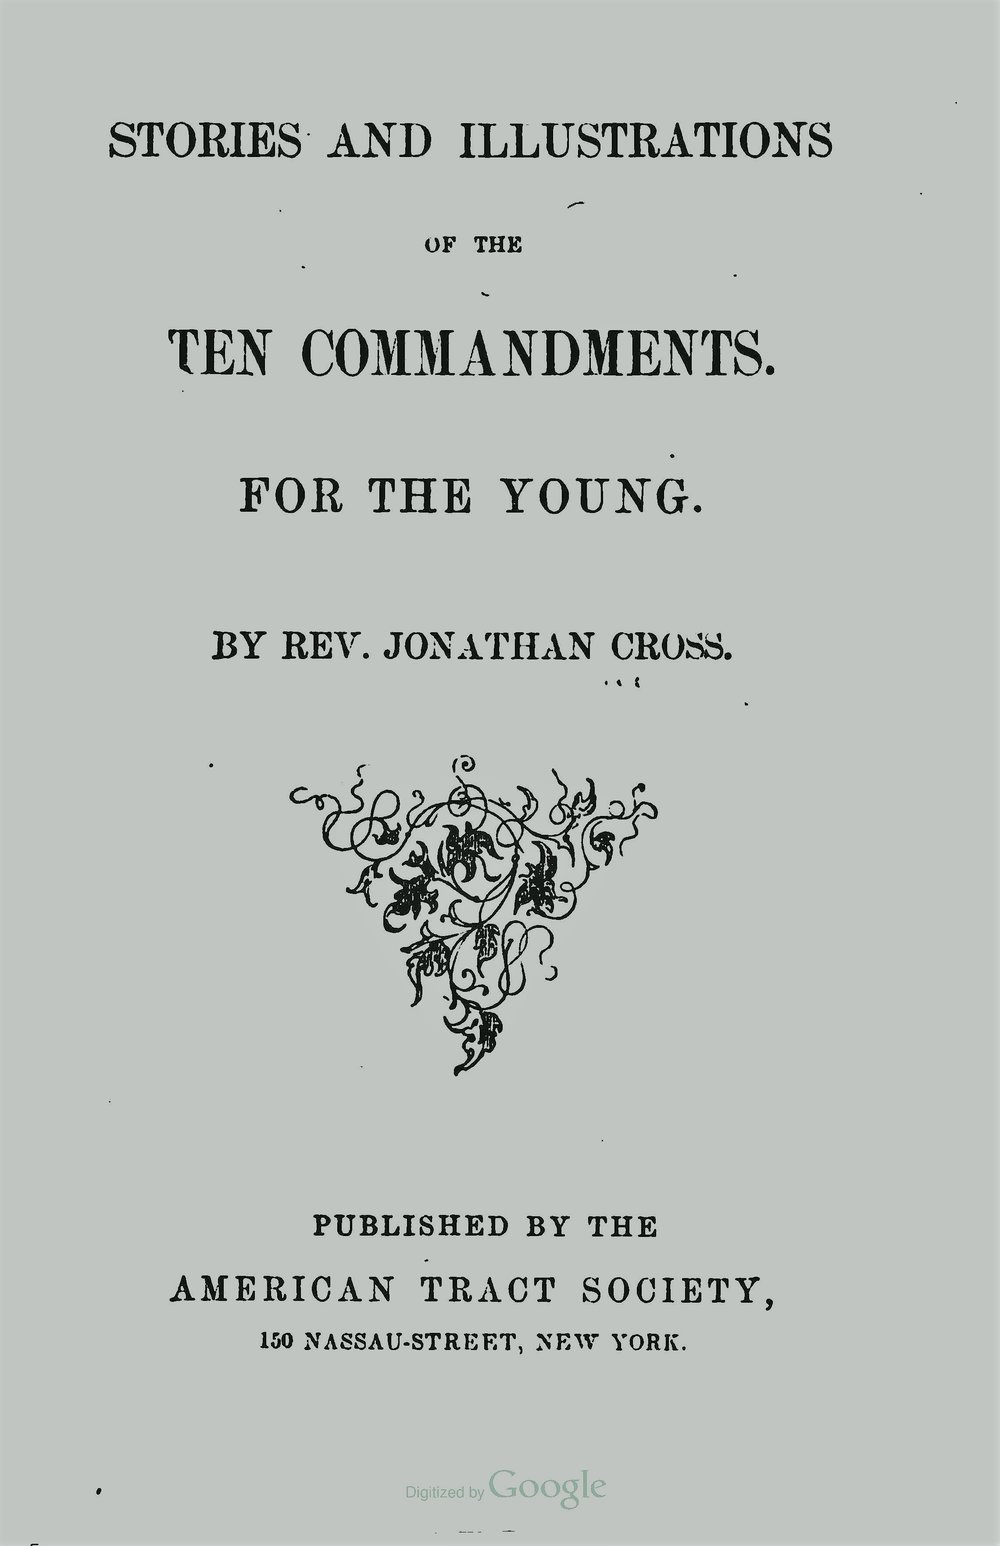 Cross, Jonathan, Stories and Illustrations of the Ten Commandments for the Young Title Page.jpg